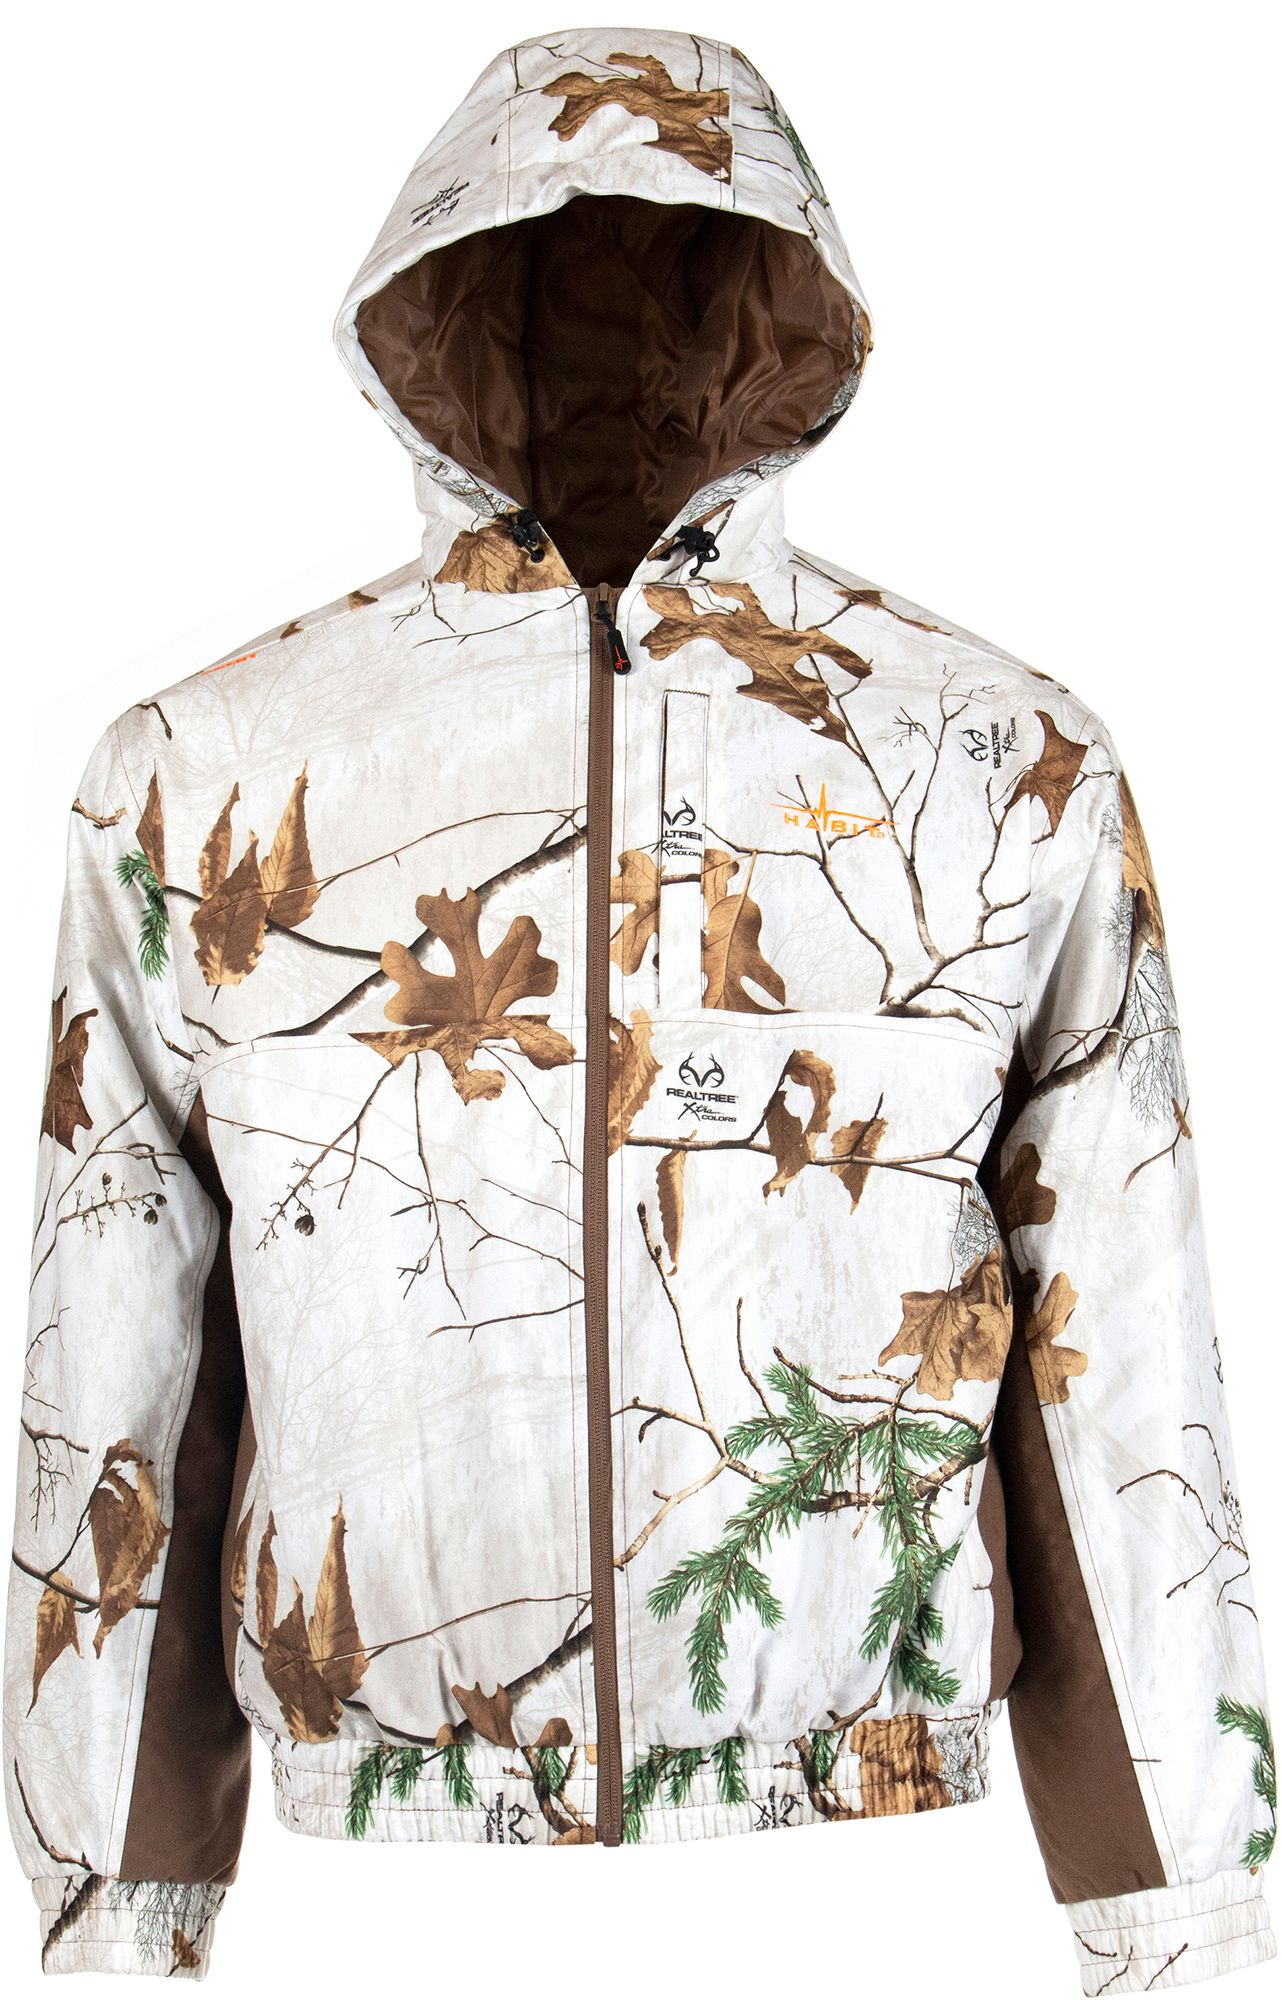 Habit Men's Cedar Branch Insulated Waterproof Bomber Hunting Jacket, Large, Multi